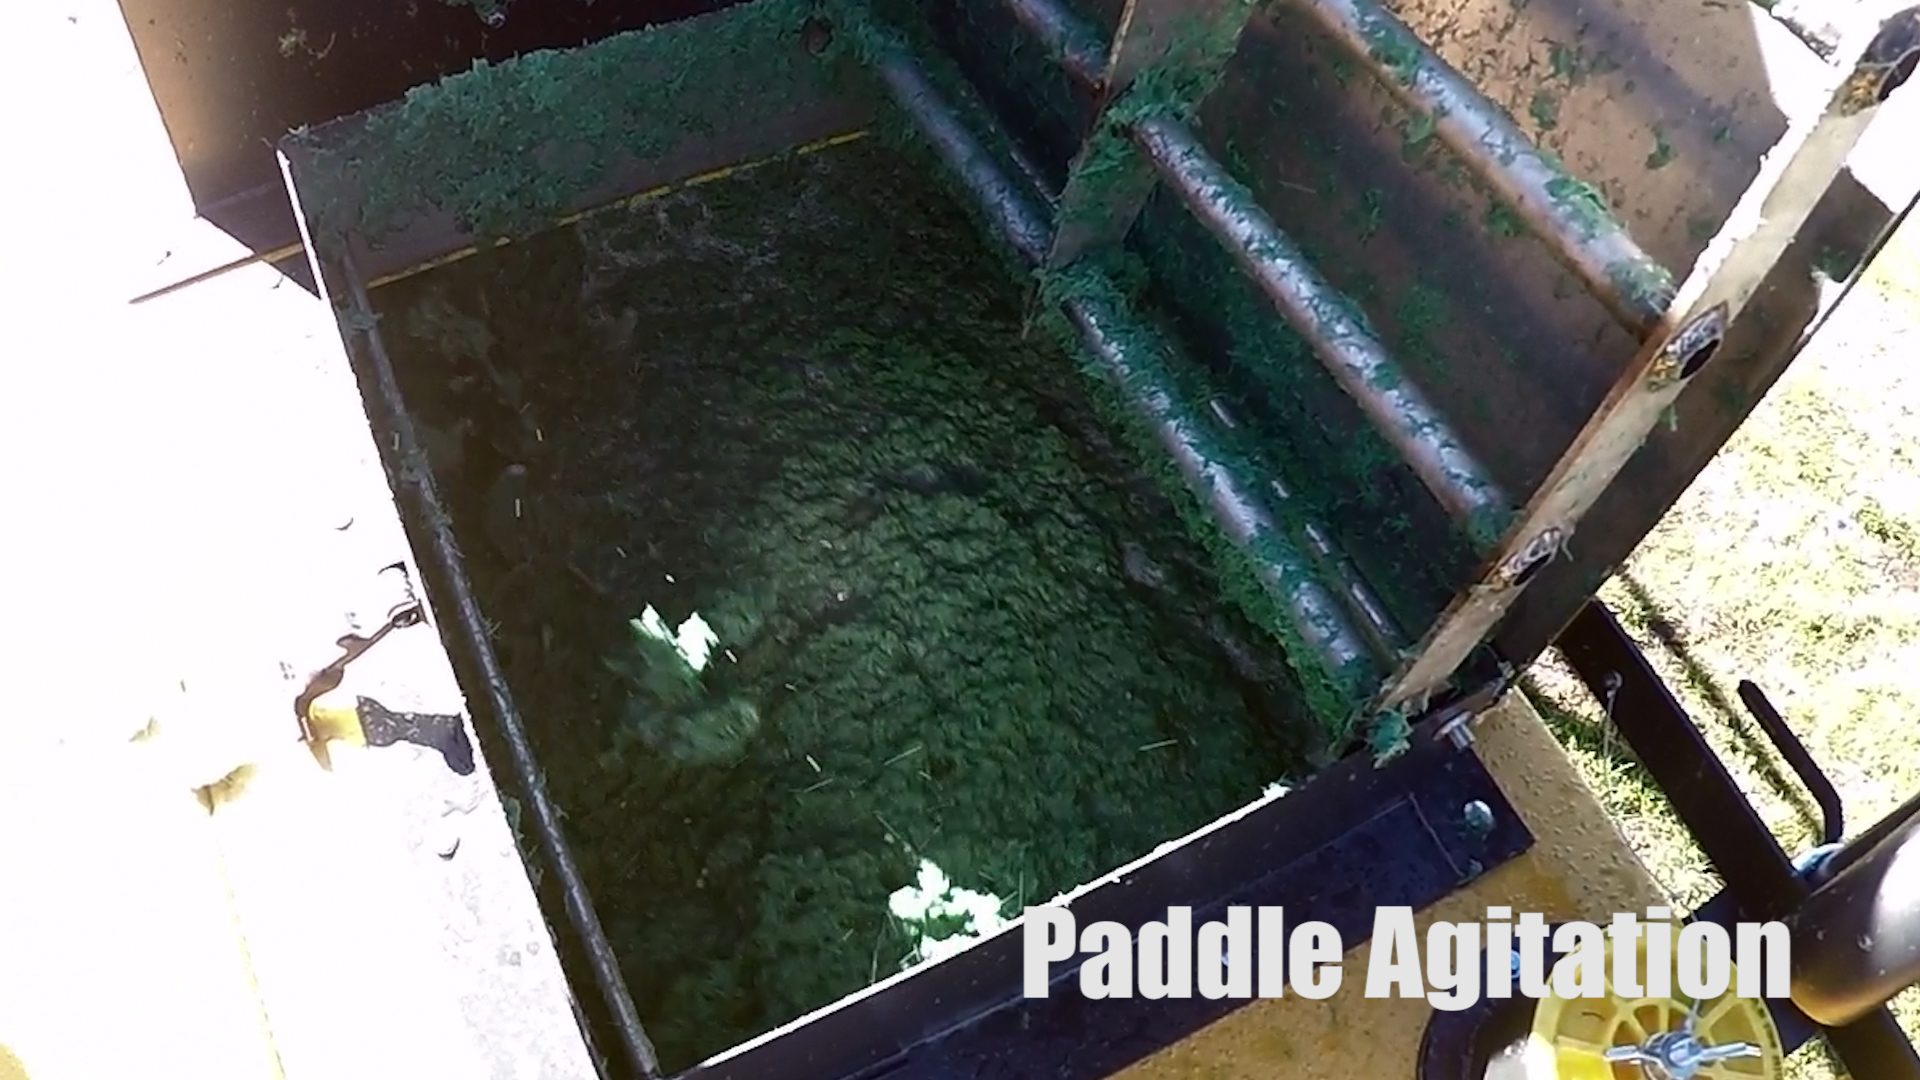 2155_paddle-agitation Large Hydroseeder for Sale | C400HO | Large HydroMulcher